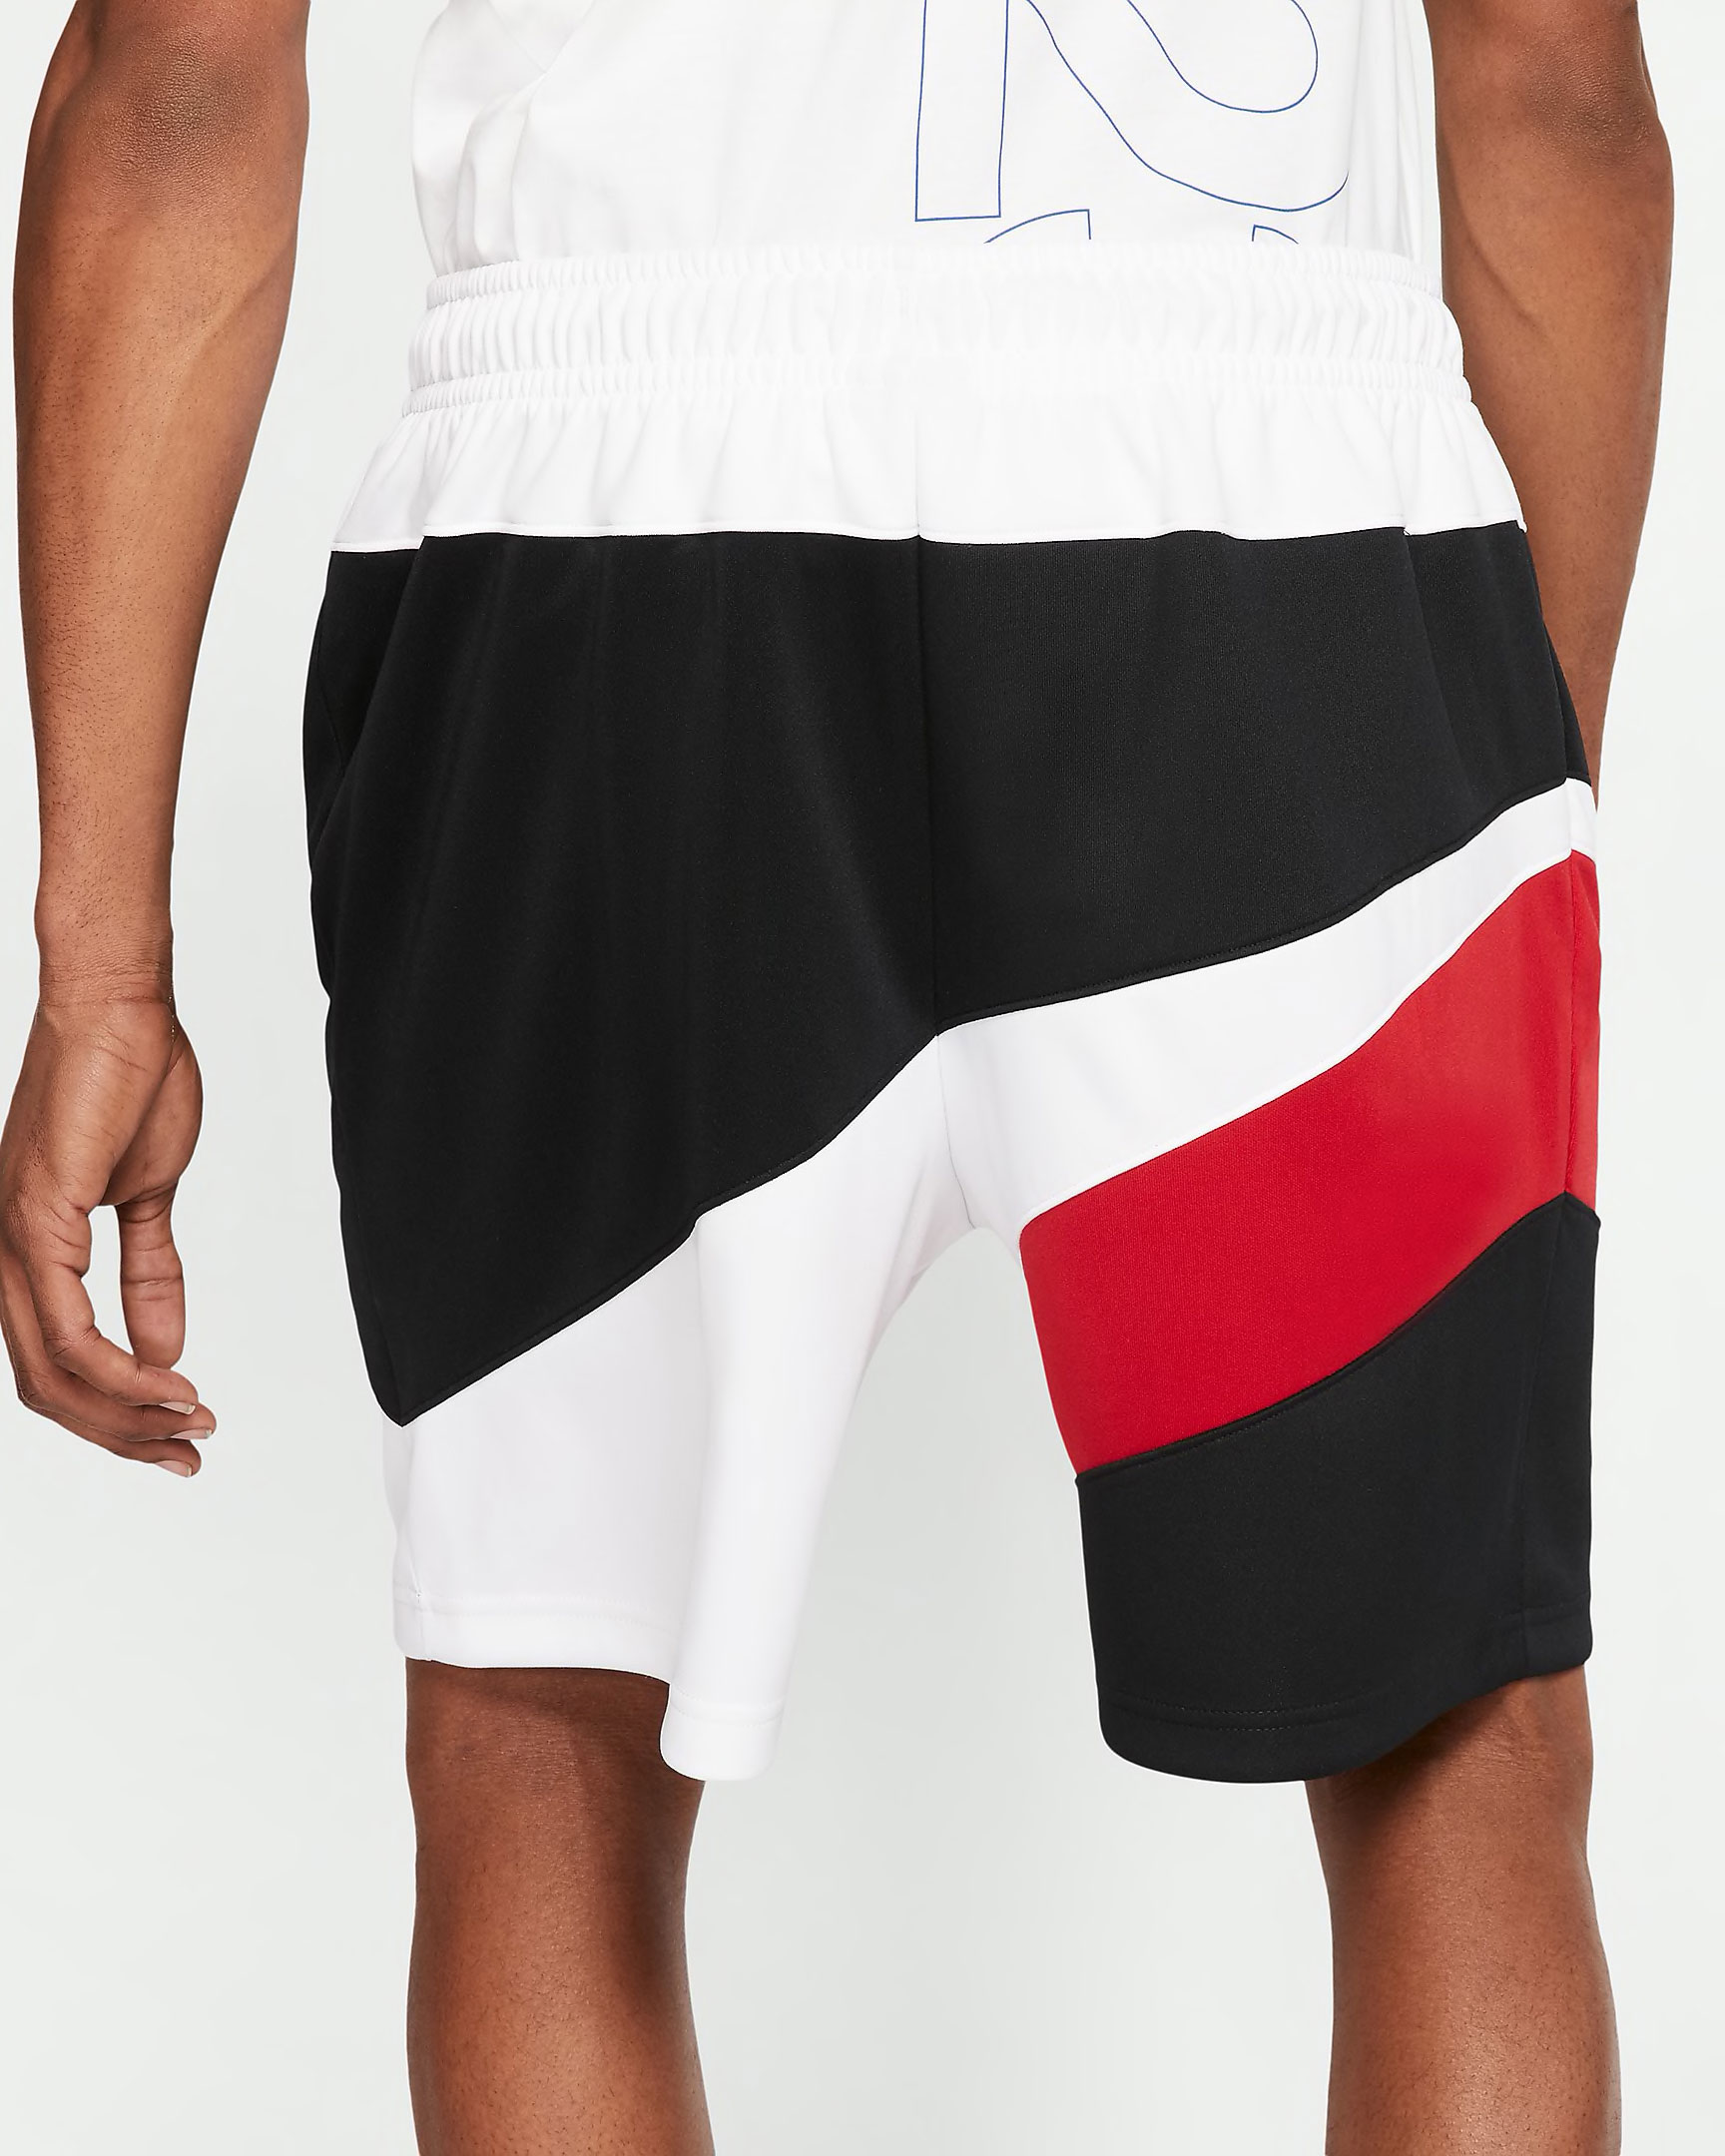 jordan-jumpman-wave-shorts-black-white-red-2